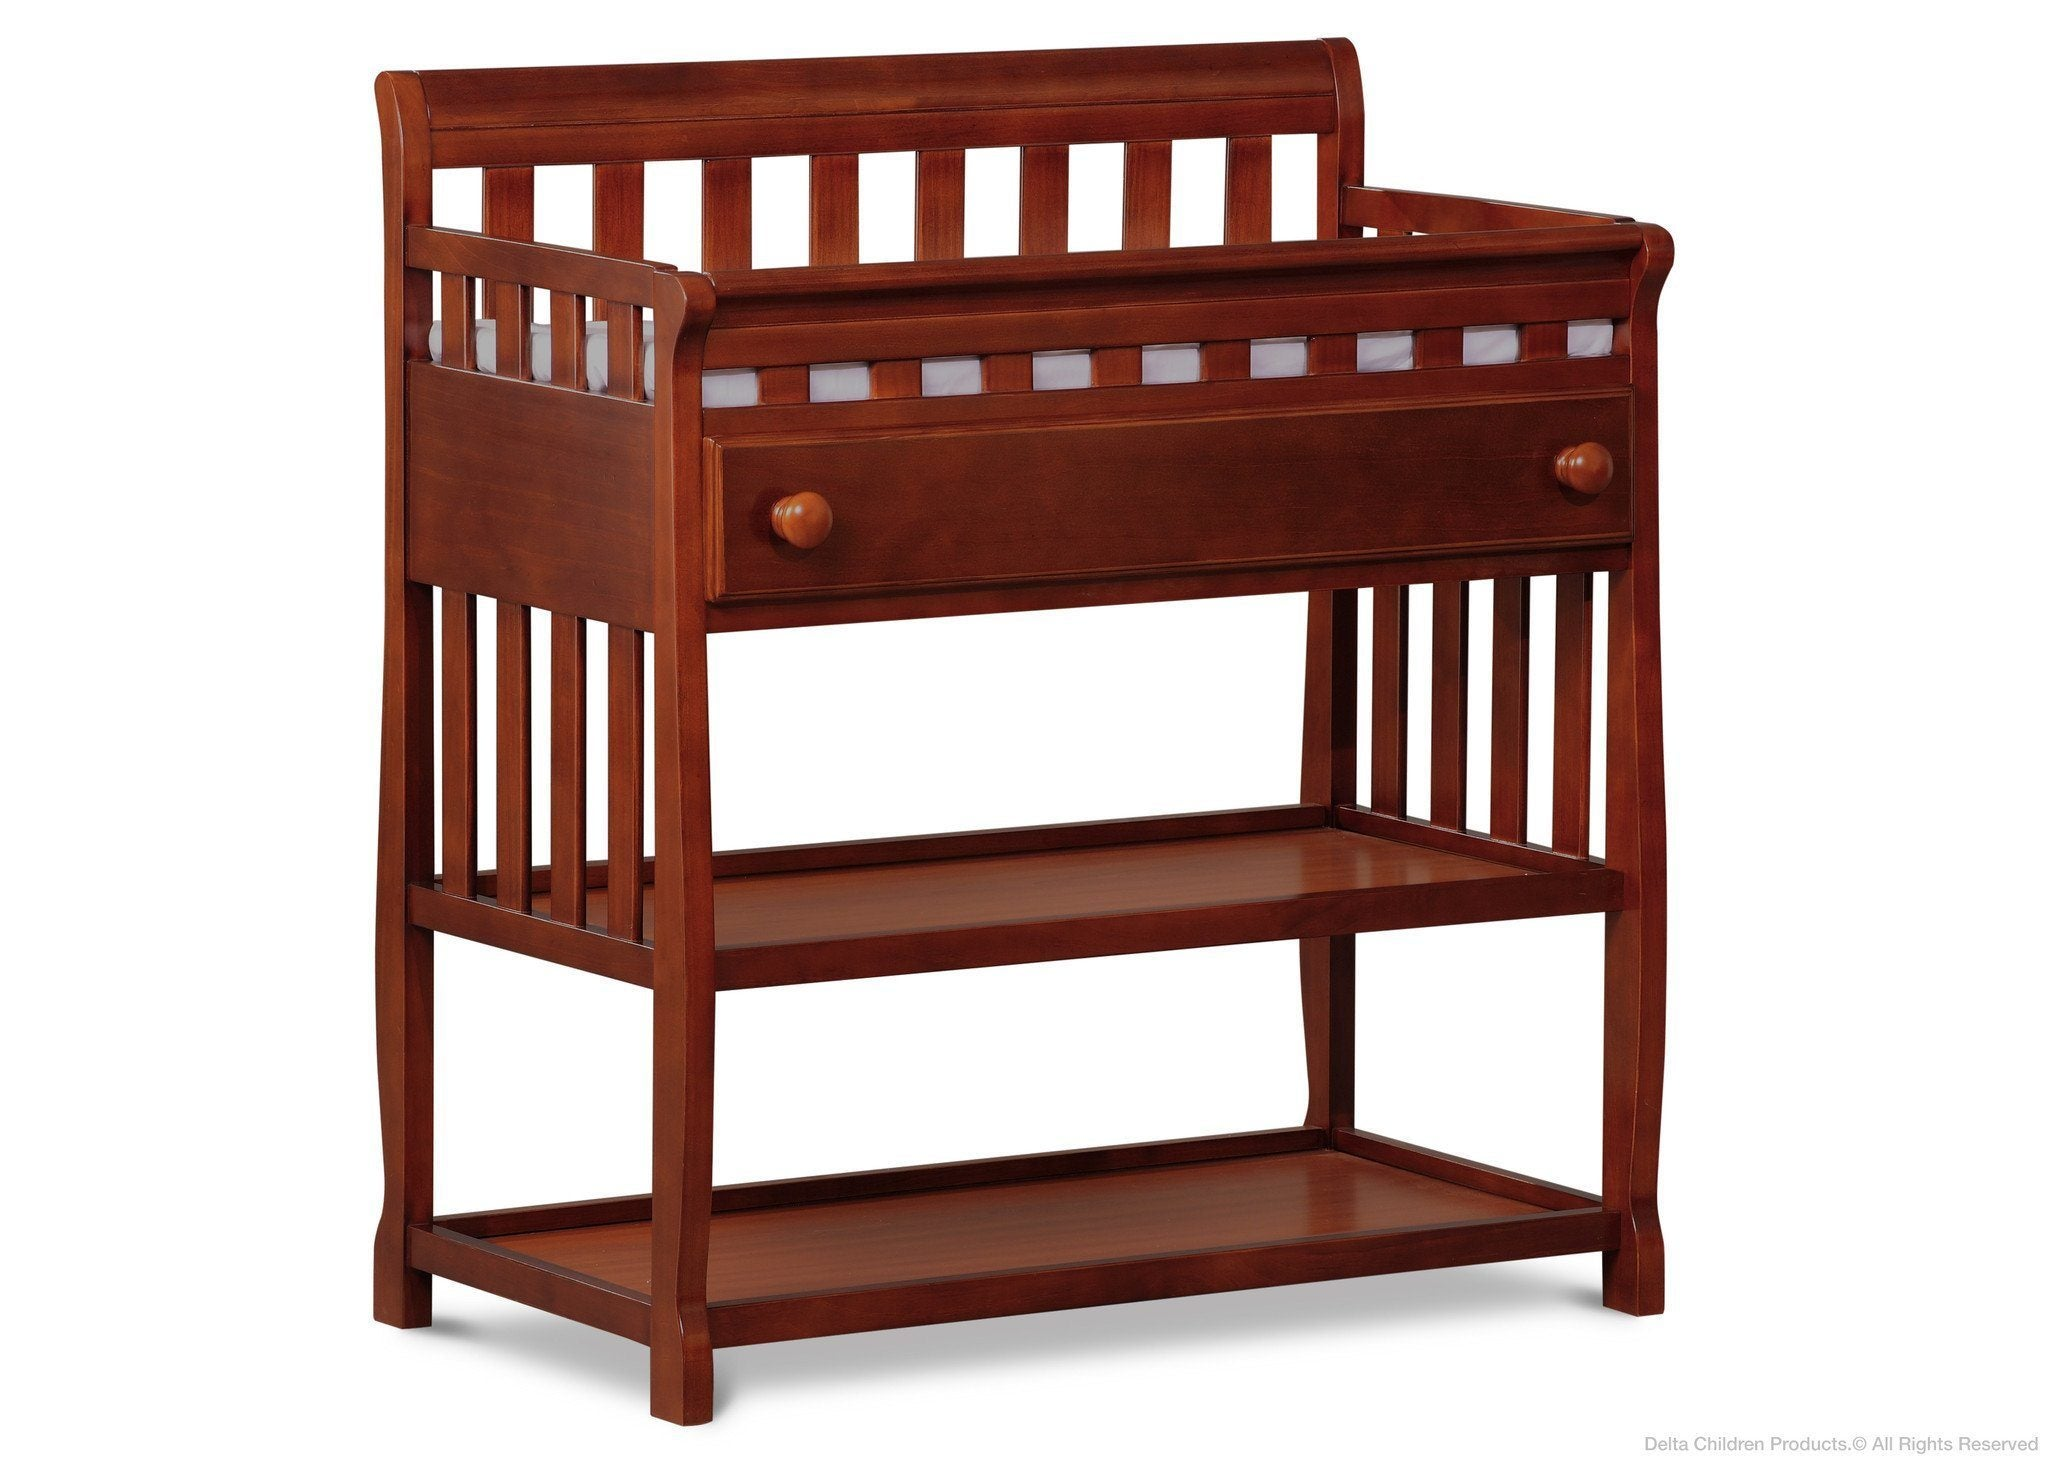 Merveilleux Delta Children Dark Cherry (604) Solutions Changing Table Side View C2c ...